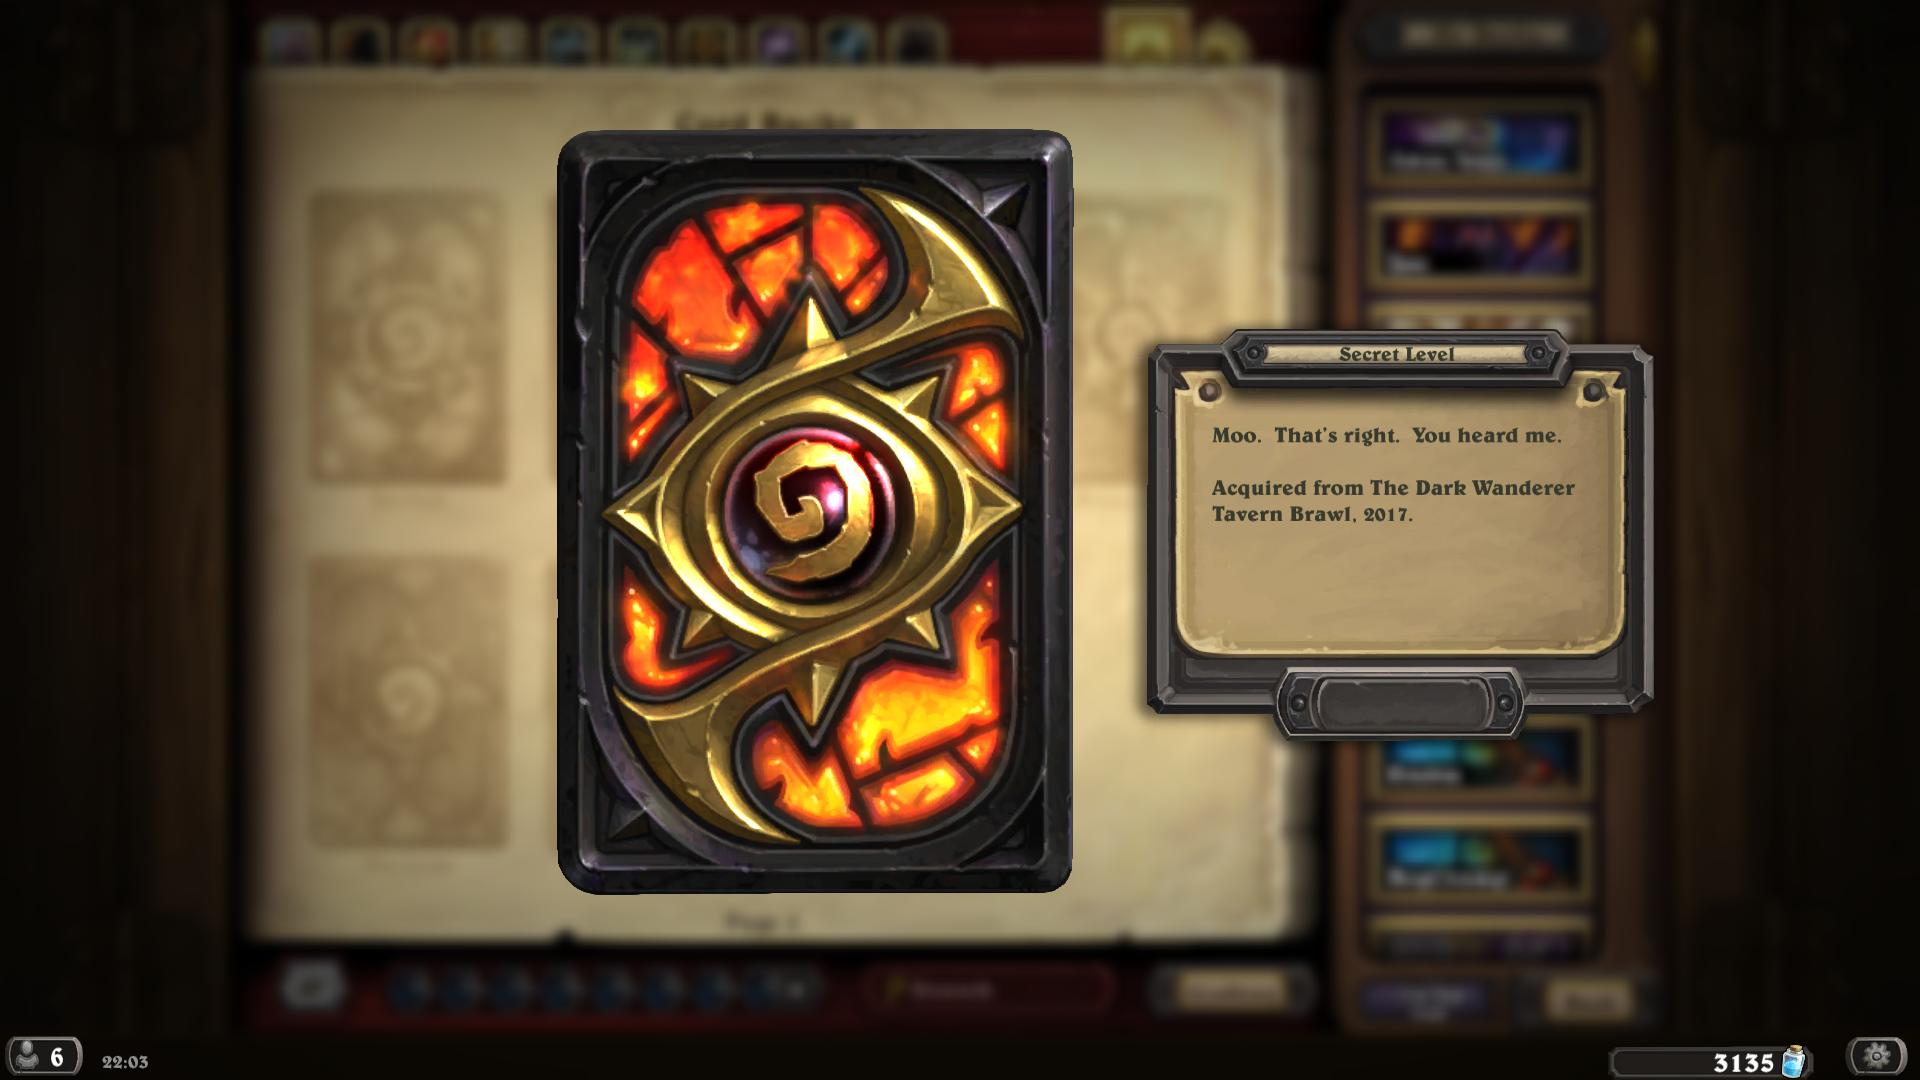 hearthstone-screenshot-11-29-16-22-03-08.png